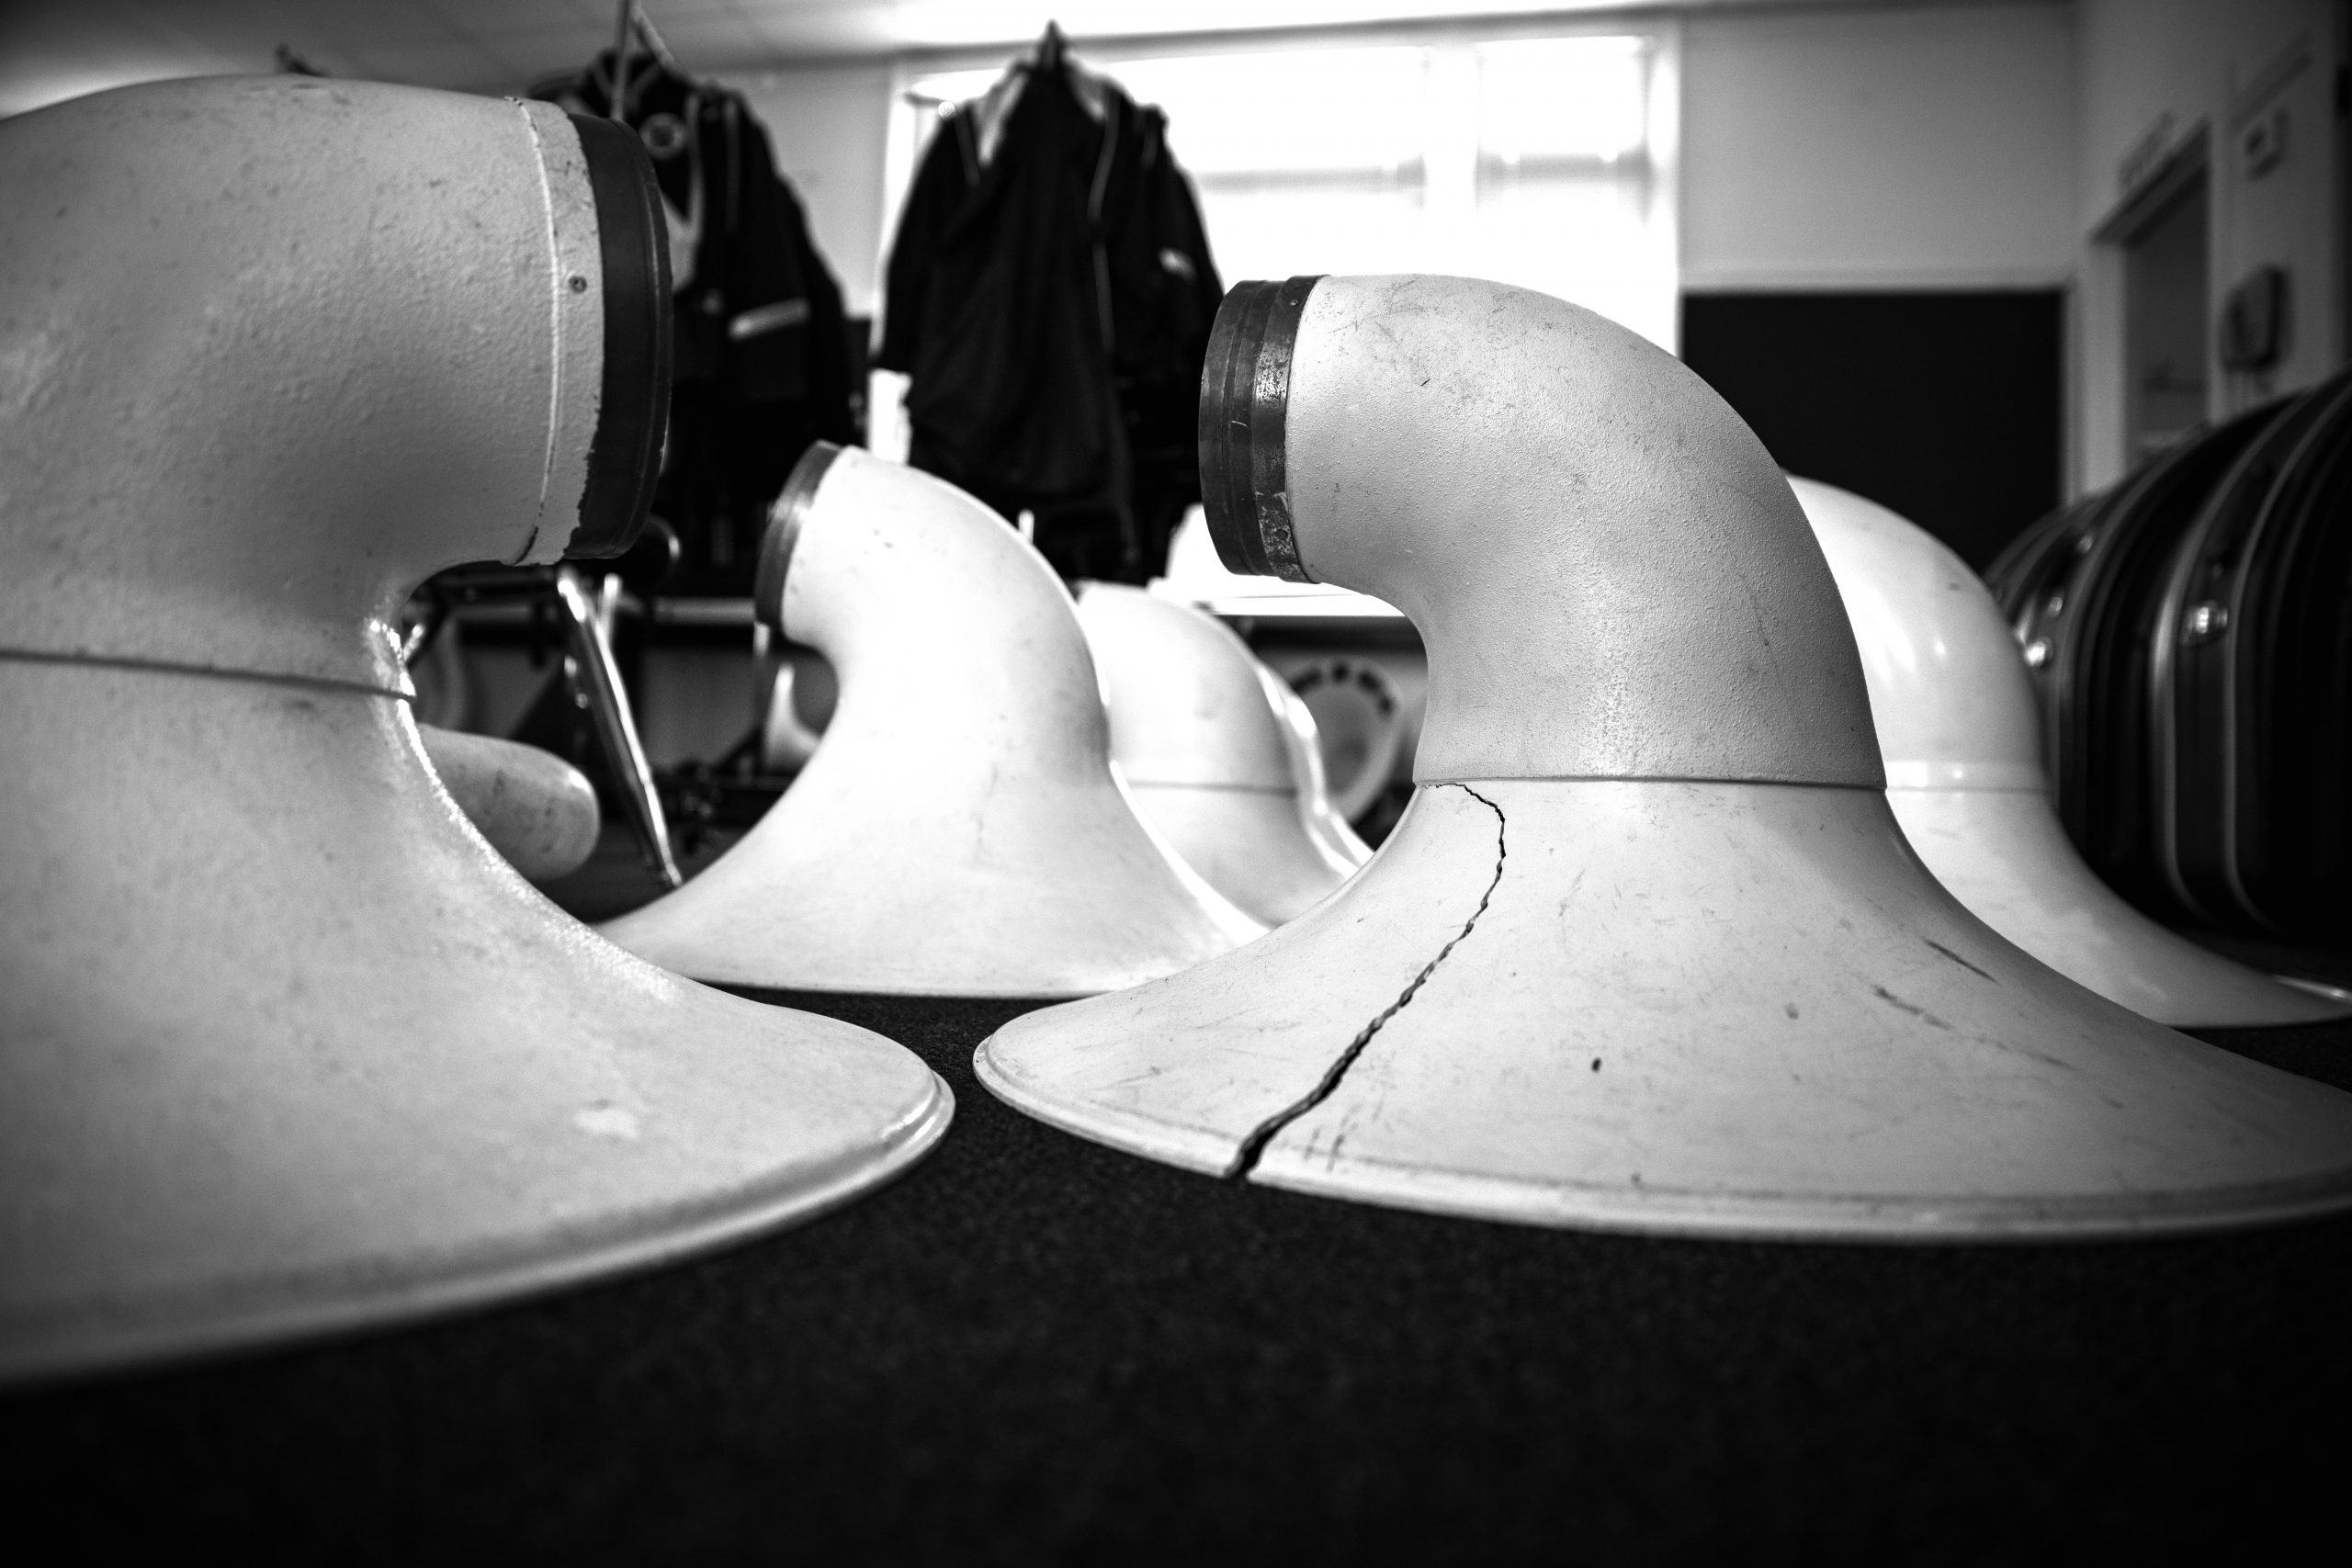 A black and white photo of the bells of tubas laying down on a table. The open, circular parts are laying face down, and they're all white. The bell most prominently in frame has a crack in it. There are chairs and instrument cases in the background. Photo by James Cullen.